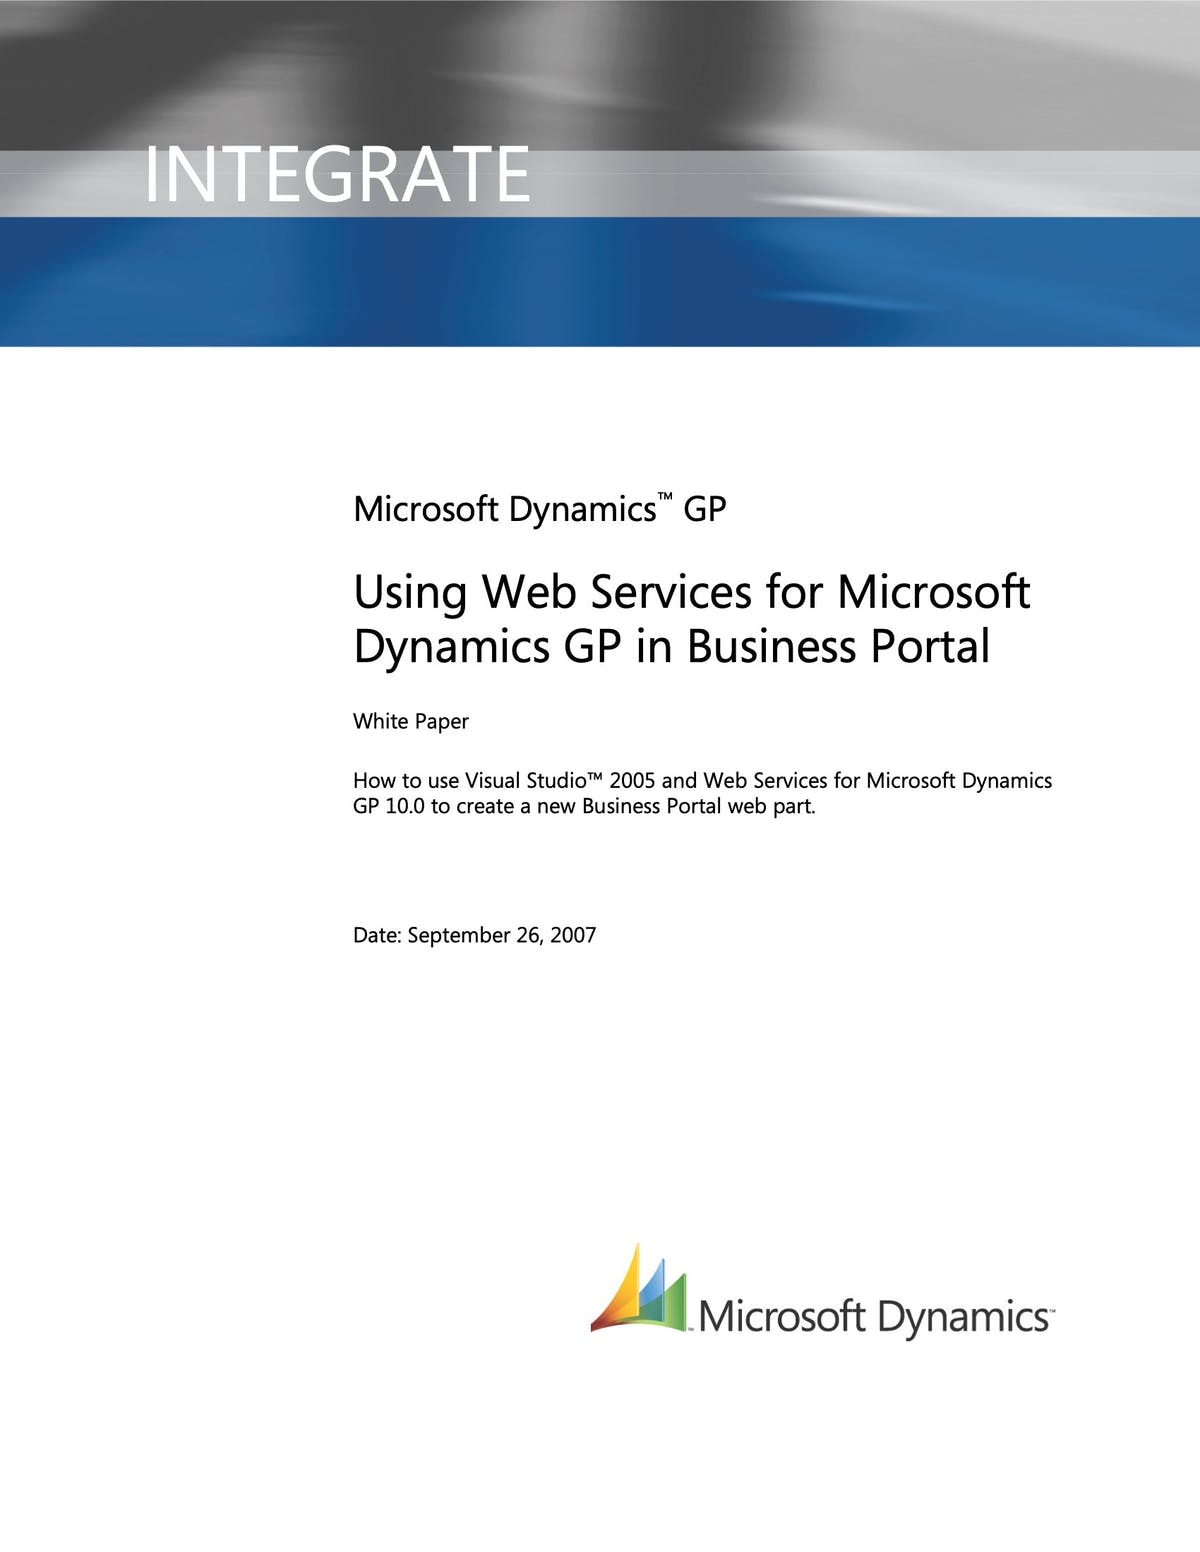 Microsoft Dynamics GP White Paper - Using Web Services for Microsoft Dynamics GP in Business Portal